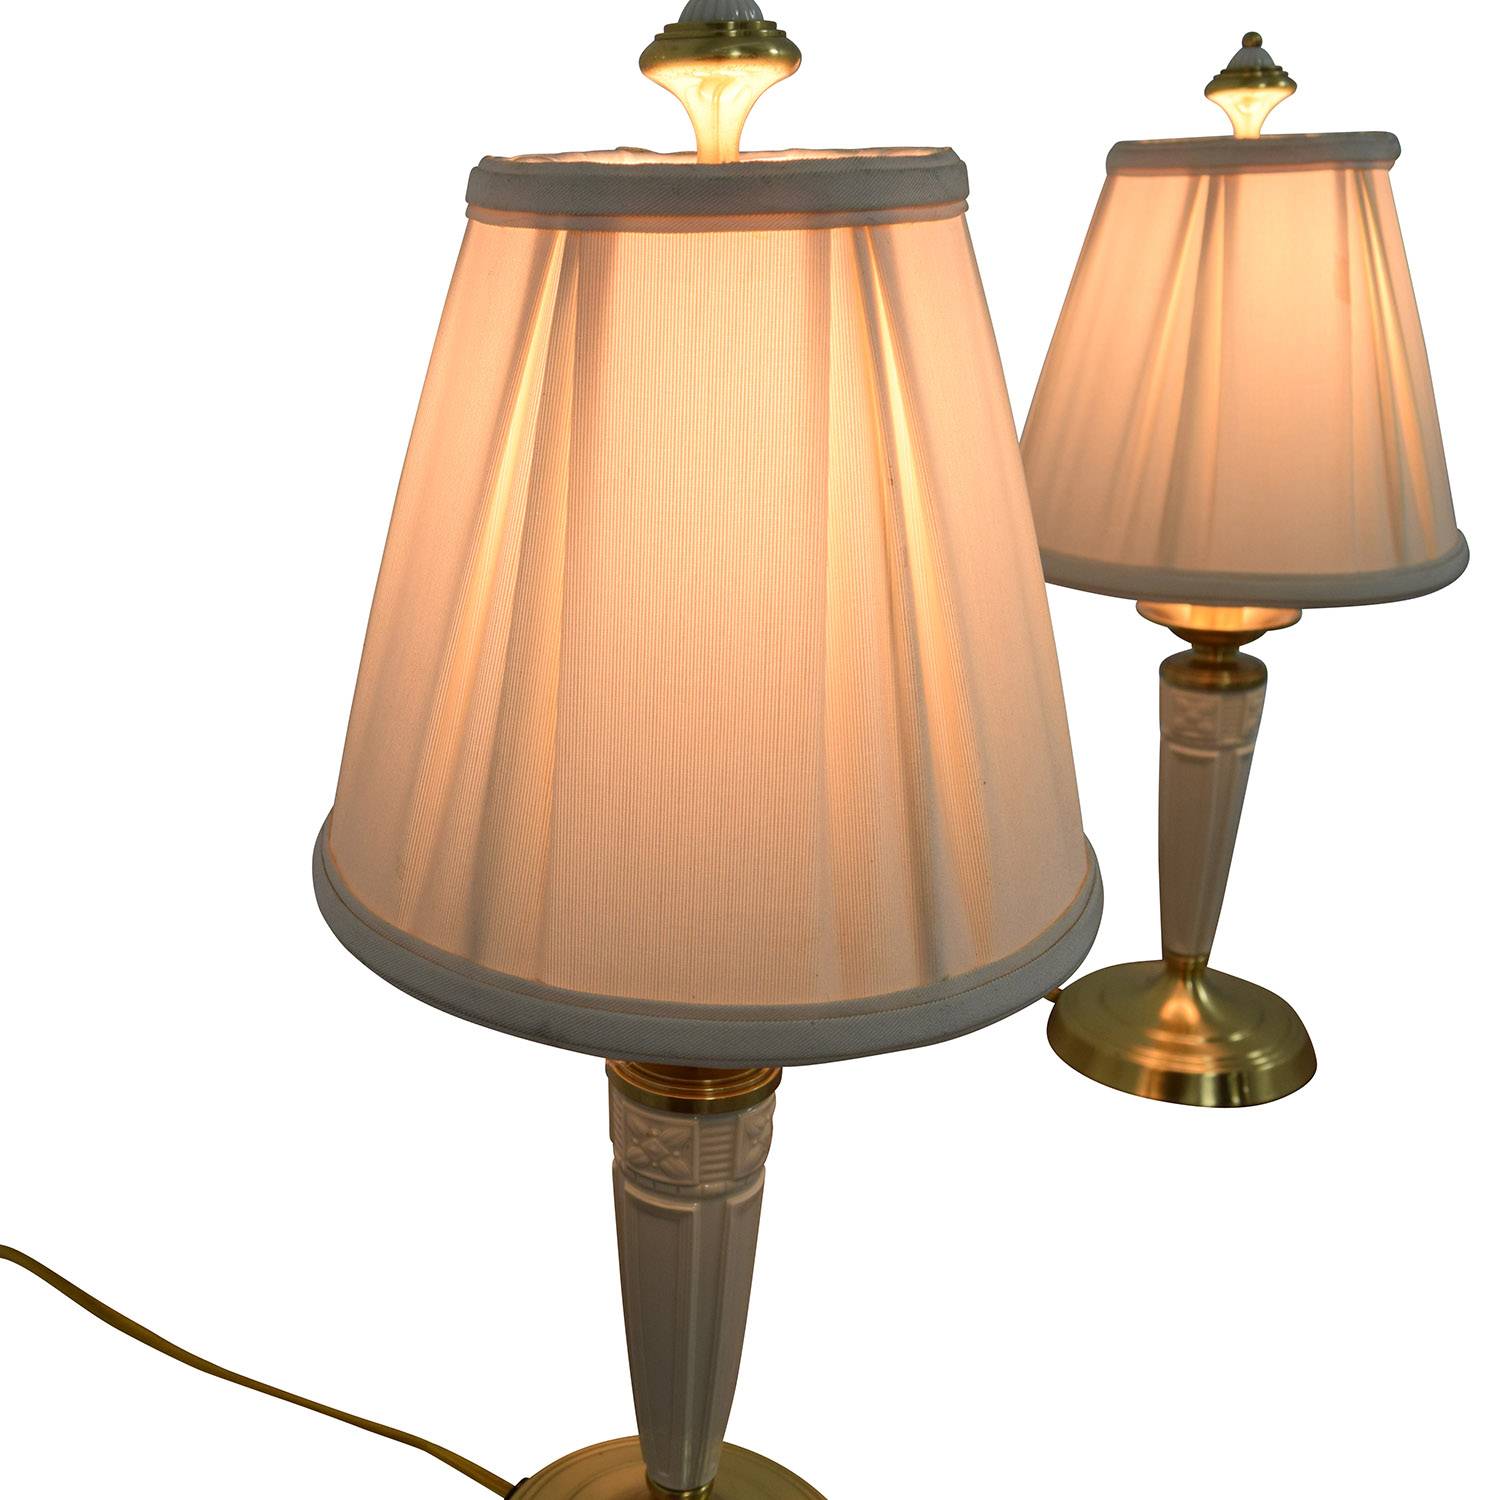 88 off lenox lenox white and gold base table lamps decor lenox white and gold base table lamps sale geotapseo Image collections